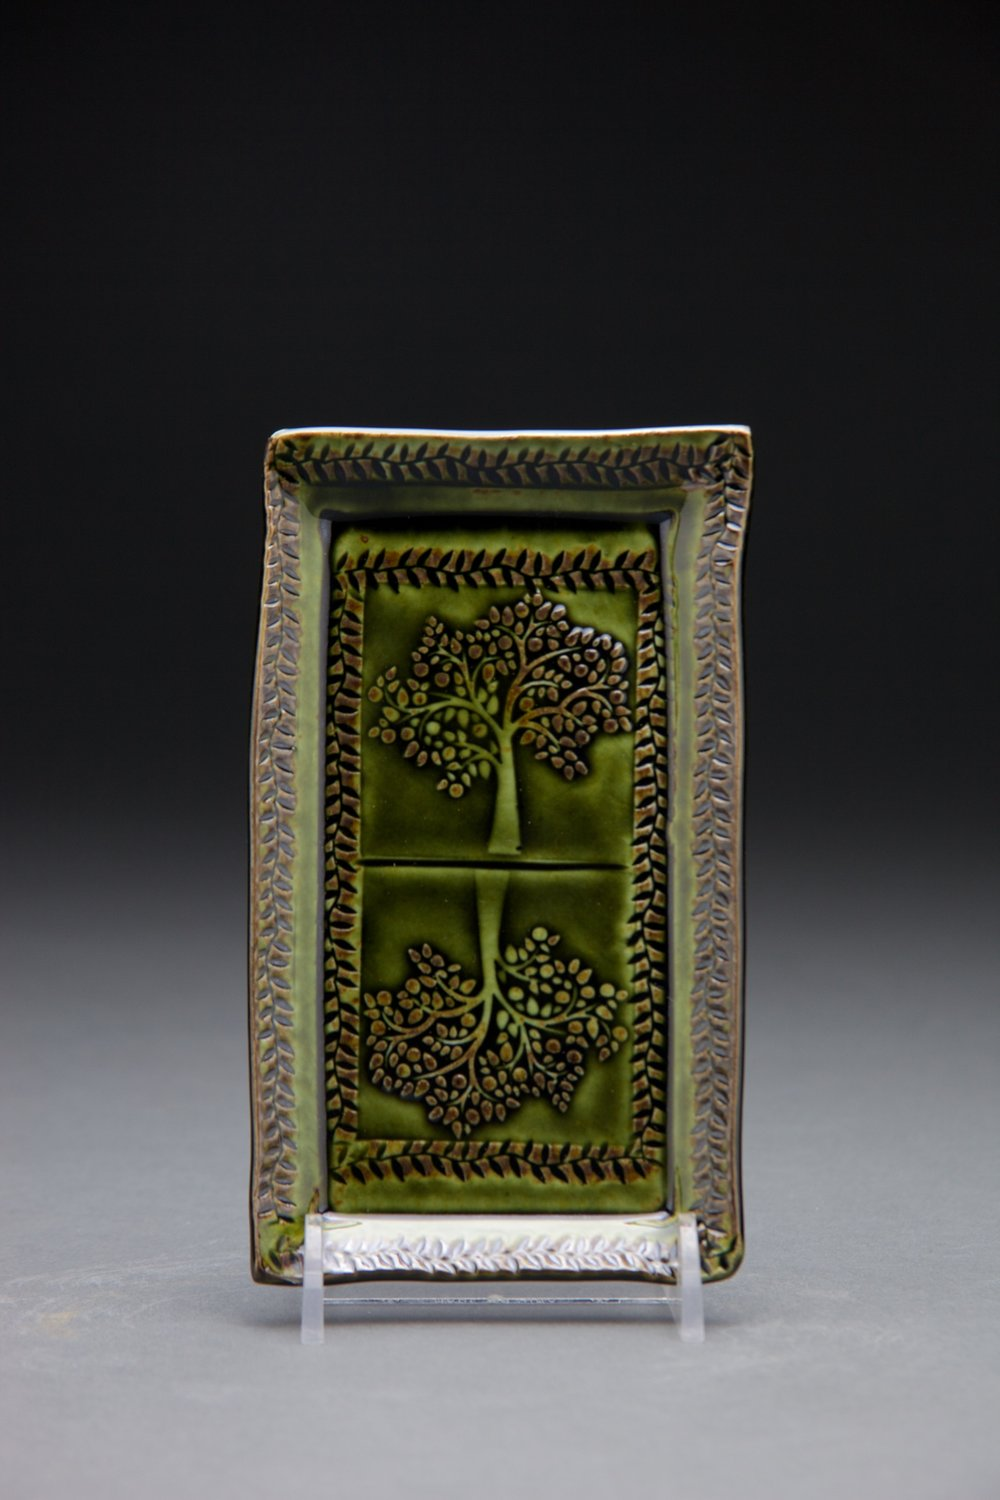 3x6 in. forest green glaze